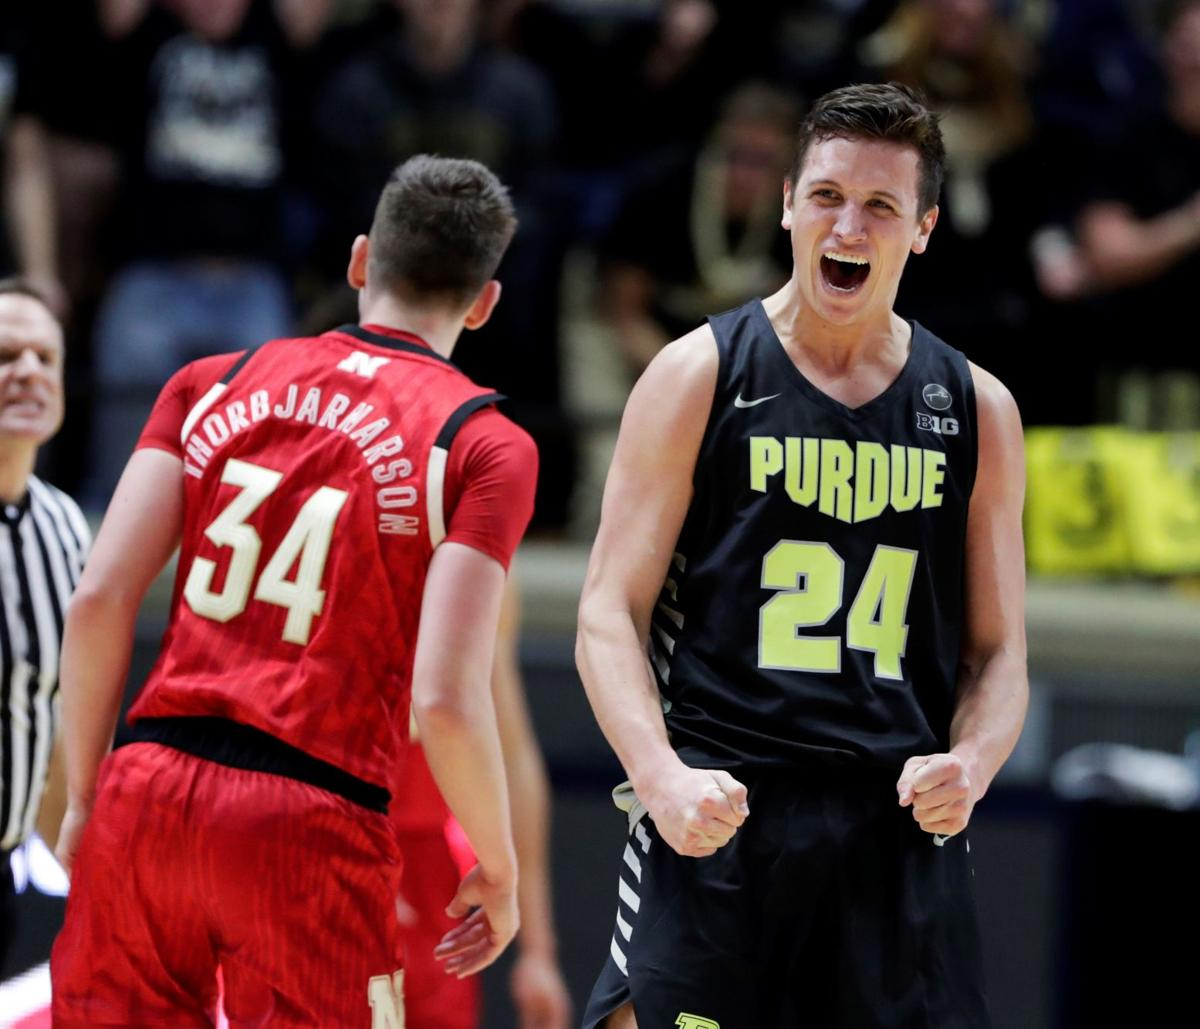 Nebraska Purdue Basketball